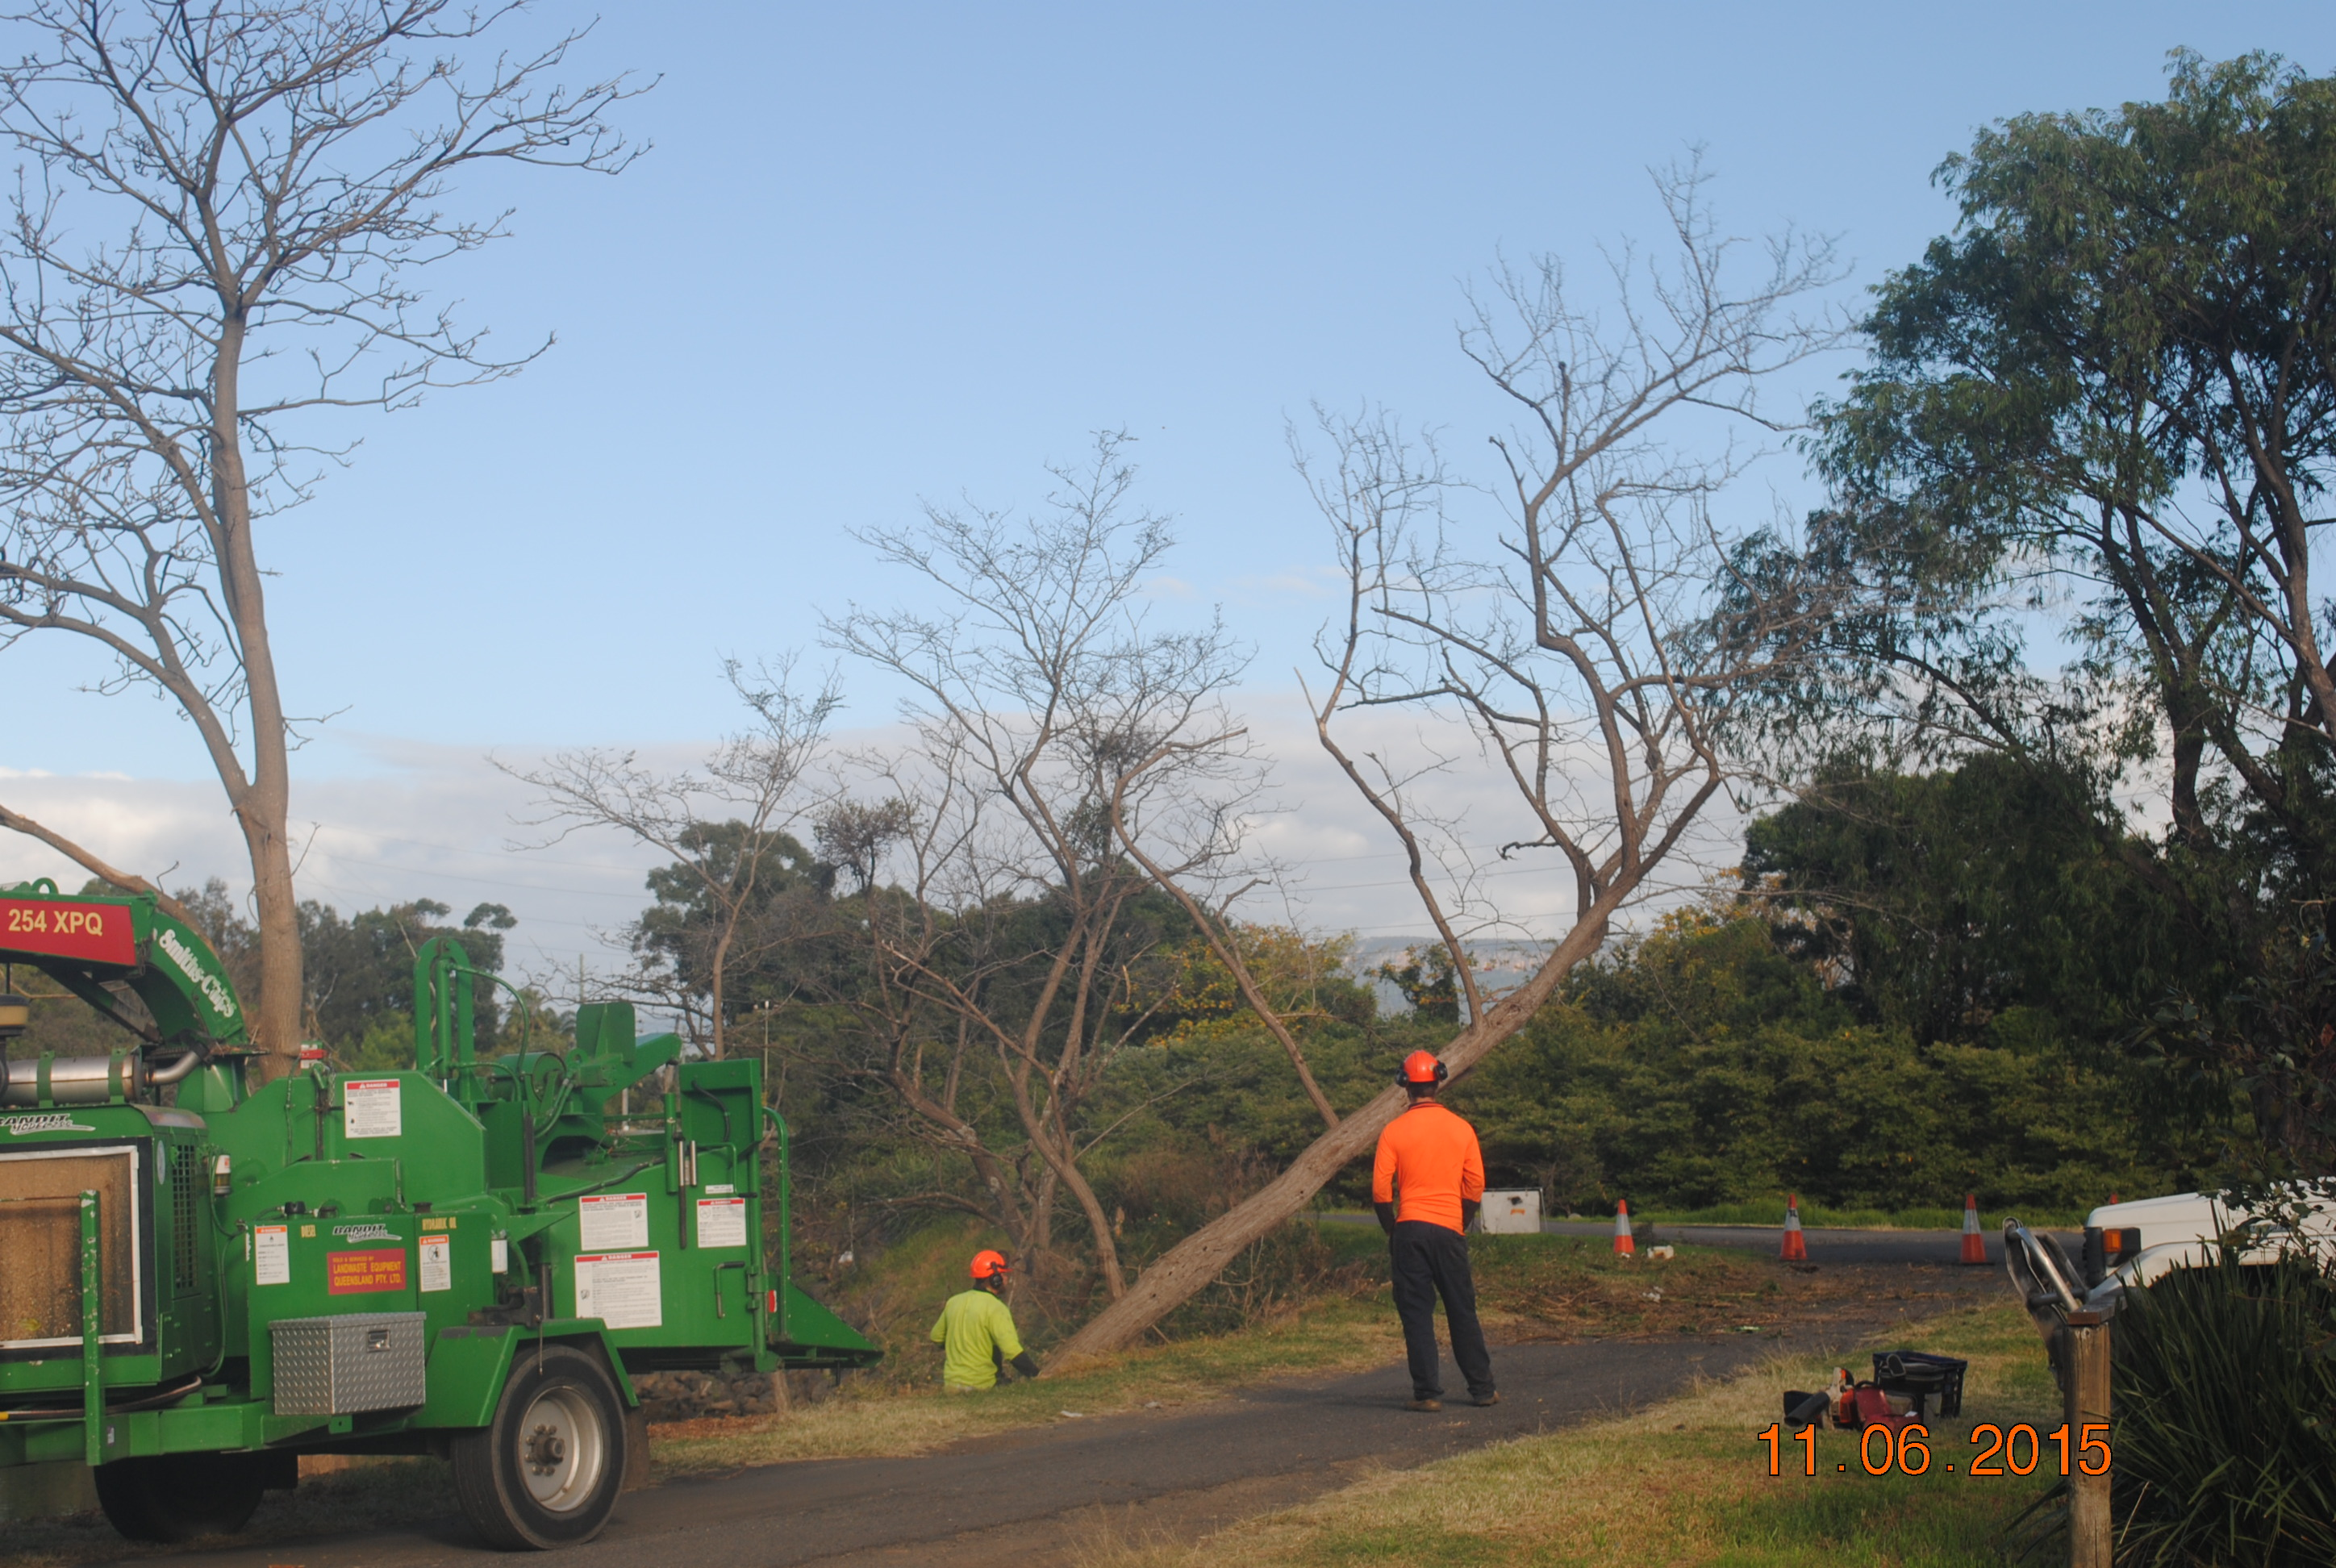 Down come the Coral Trees